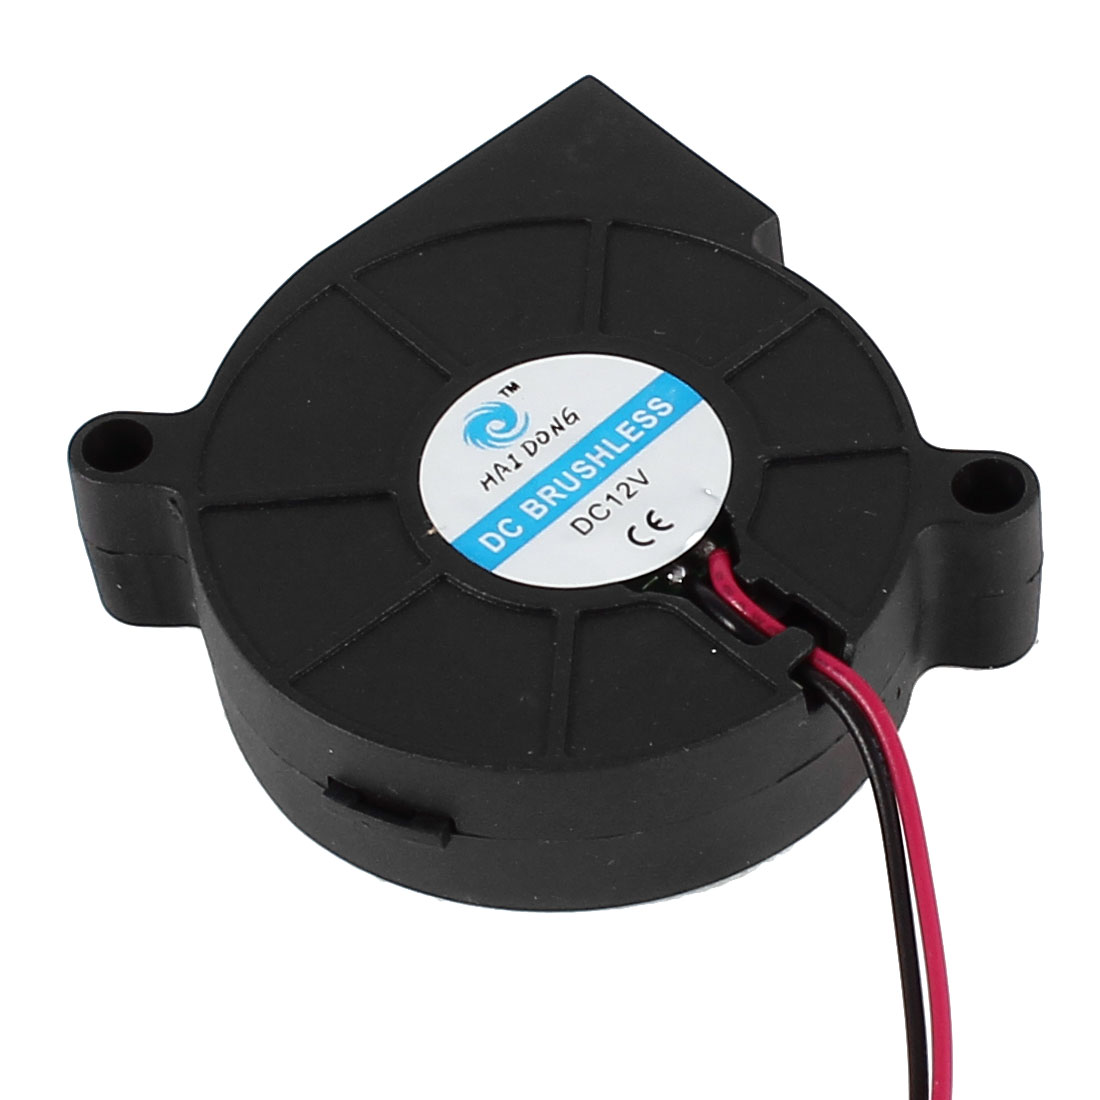 50mm x 10mm DC 12V 2Pole 3000RPM Brushless Blower Cooling Fan